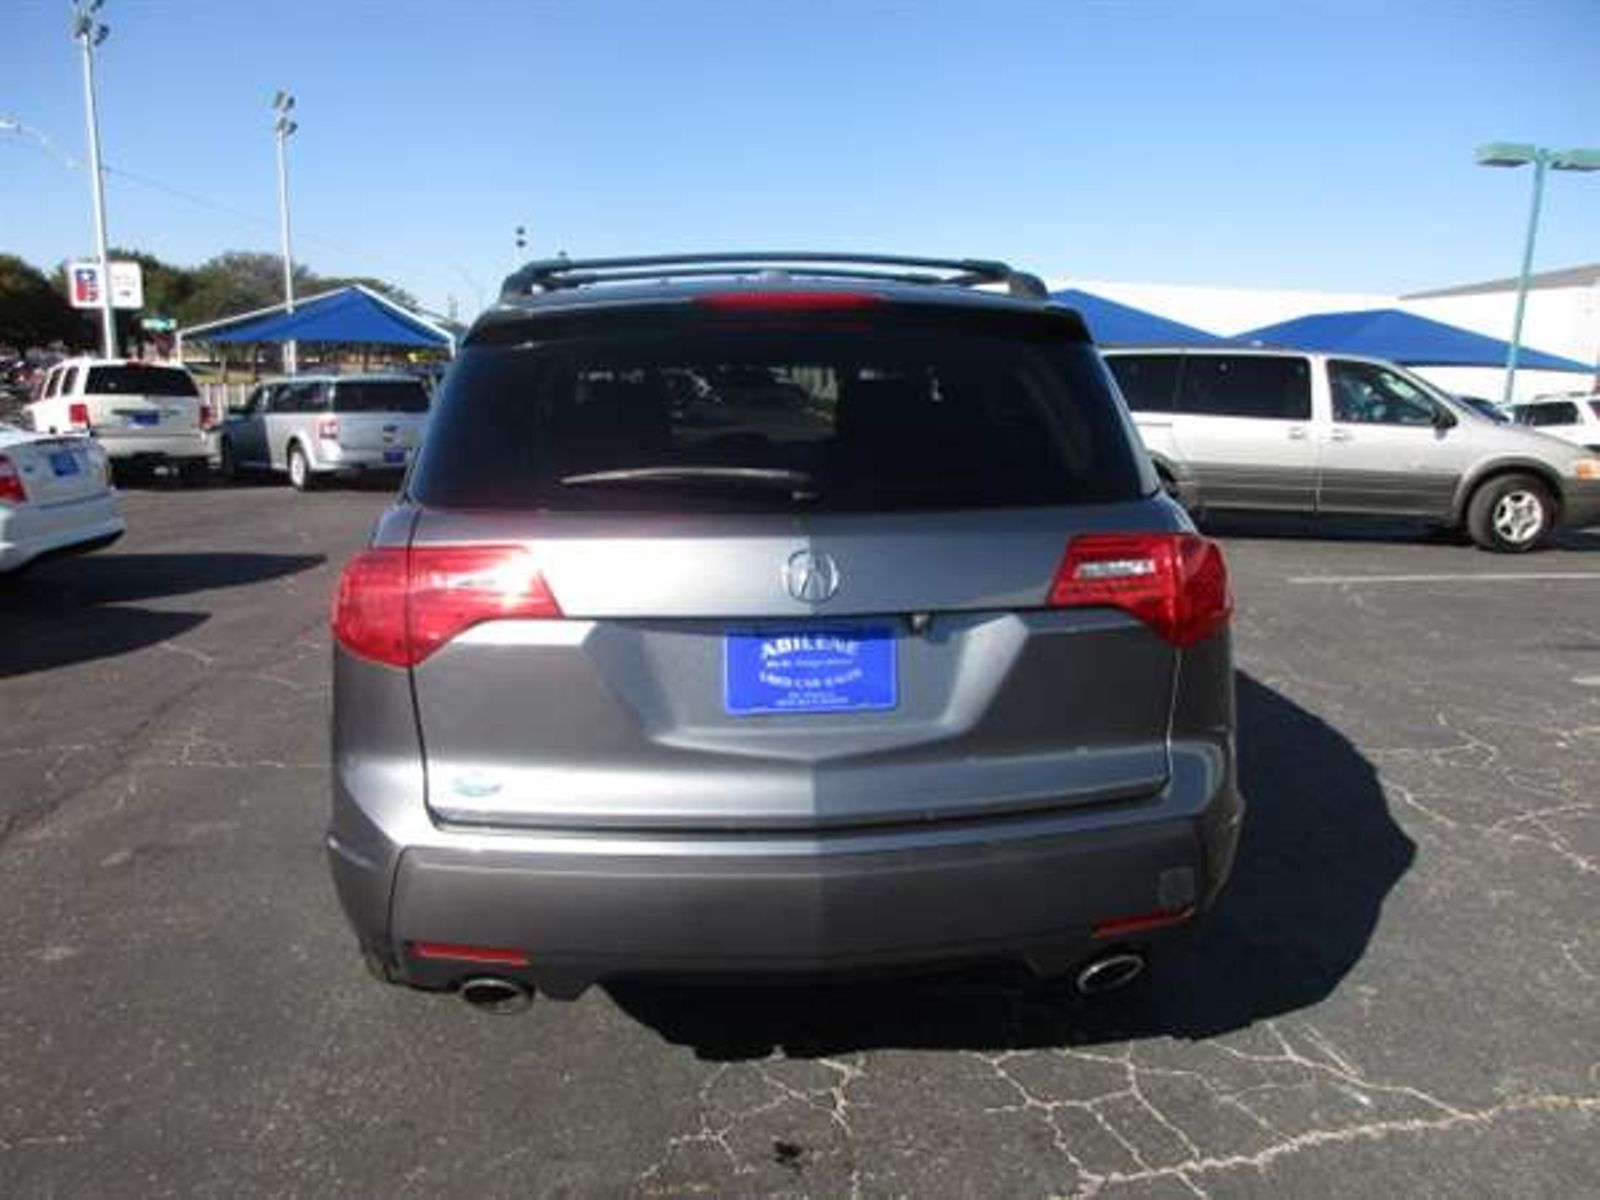 acura tx for techentertainment used civic sales and sale luxury car cars revo honda pkg accord abilene mdx